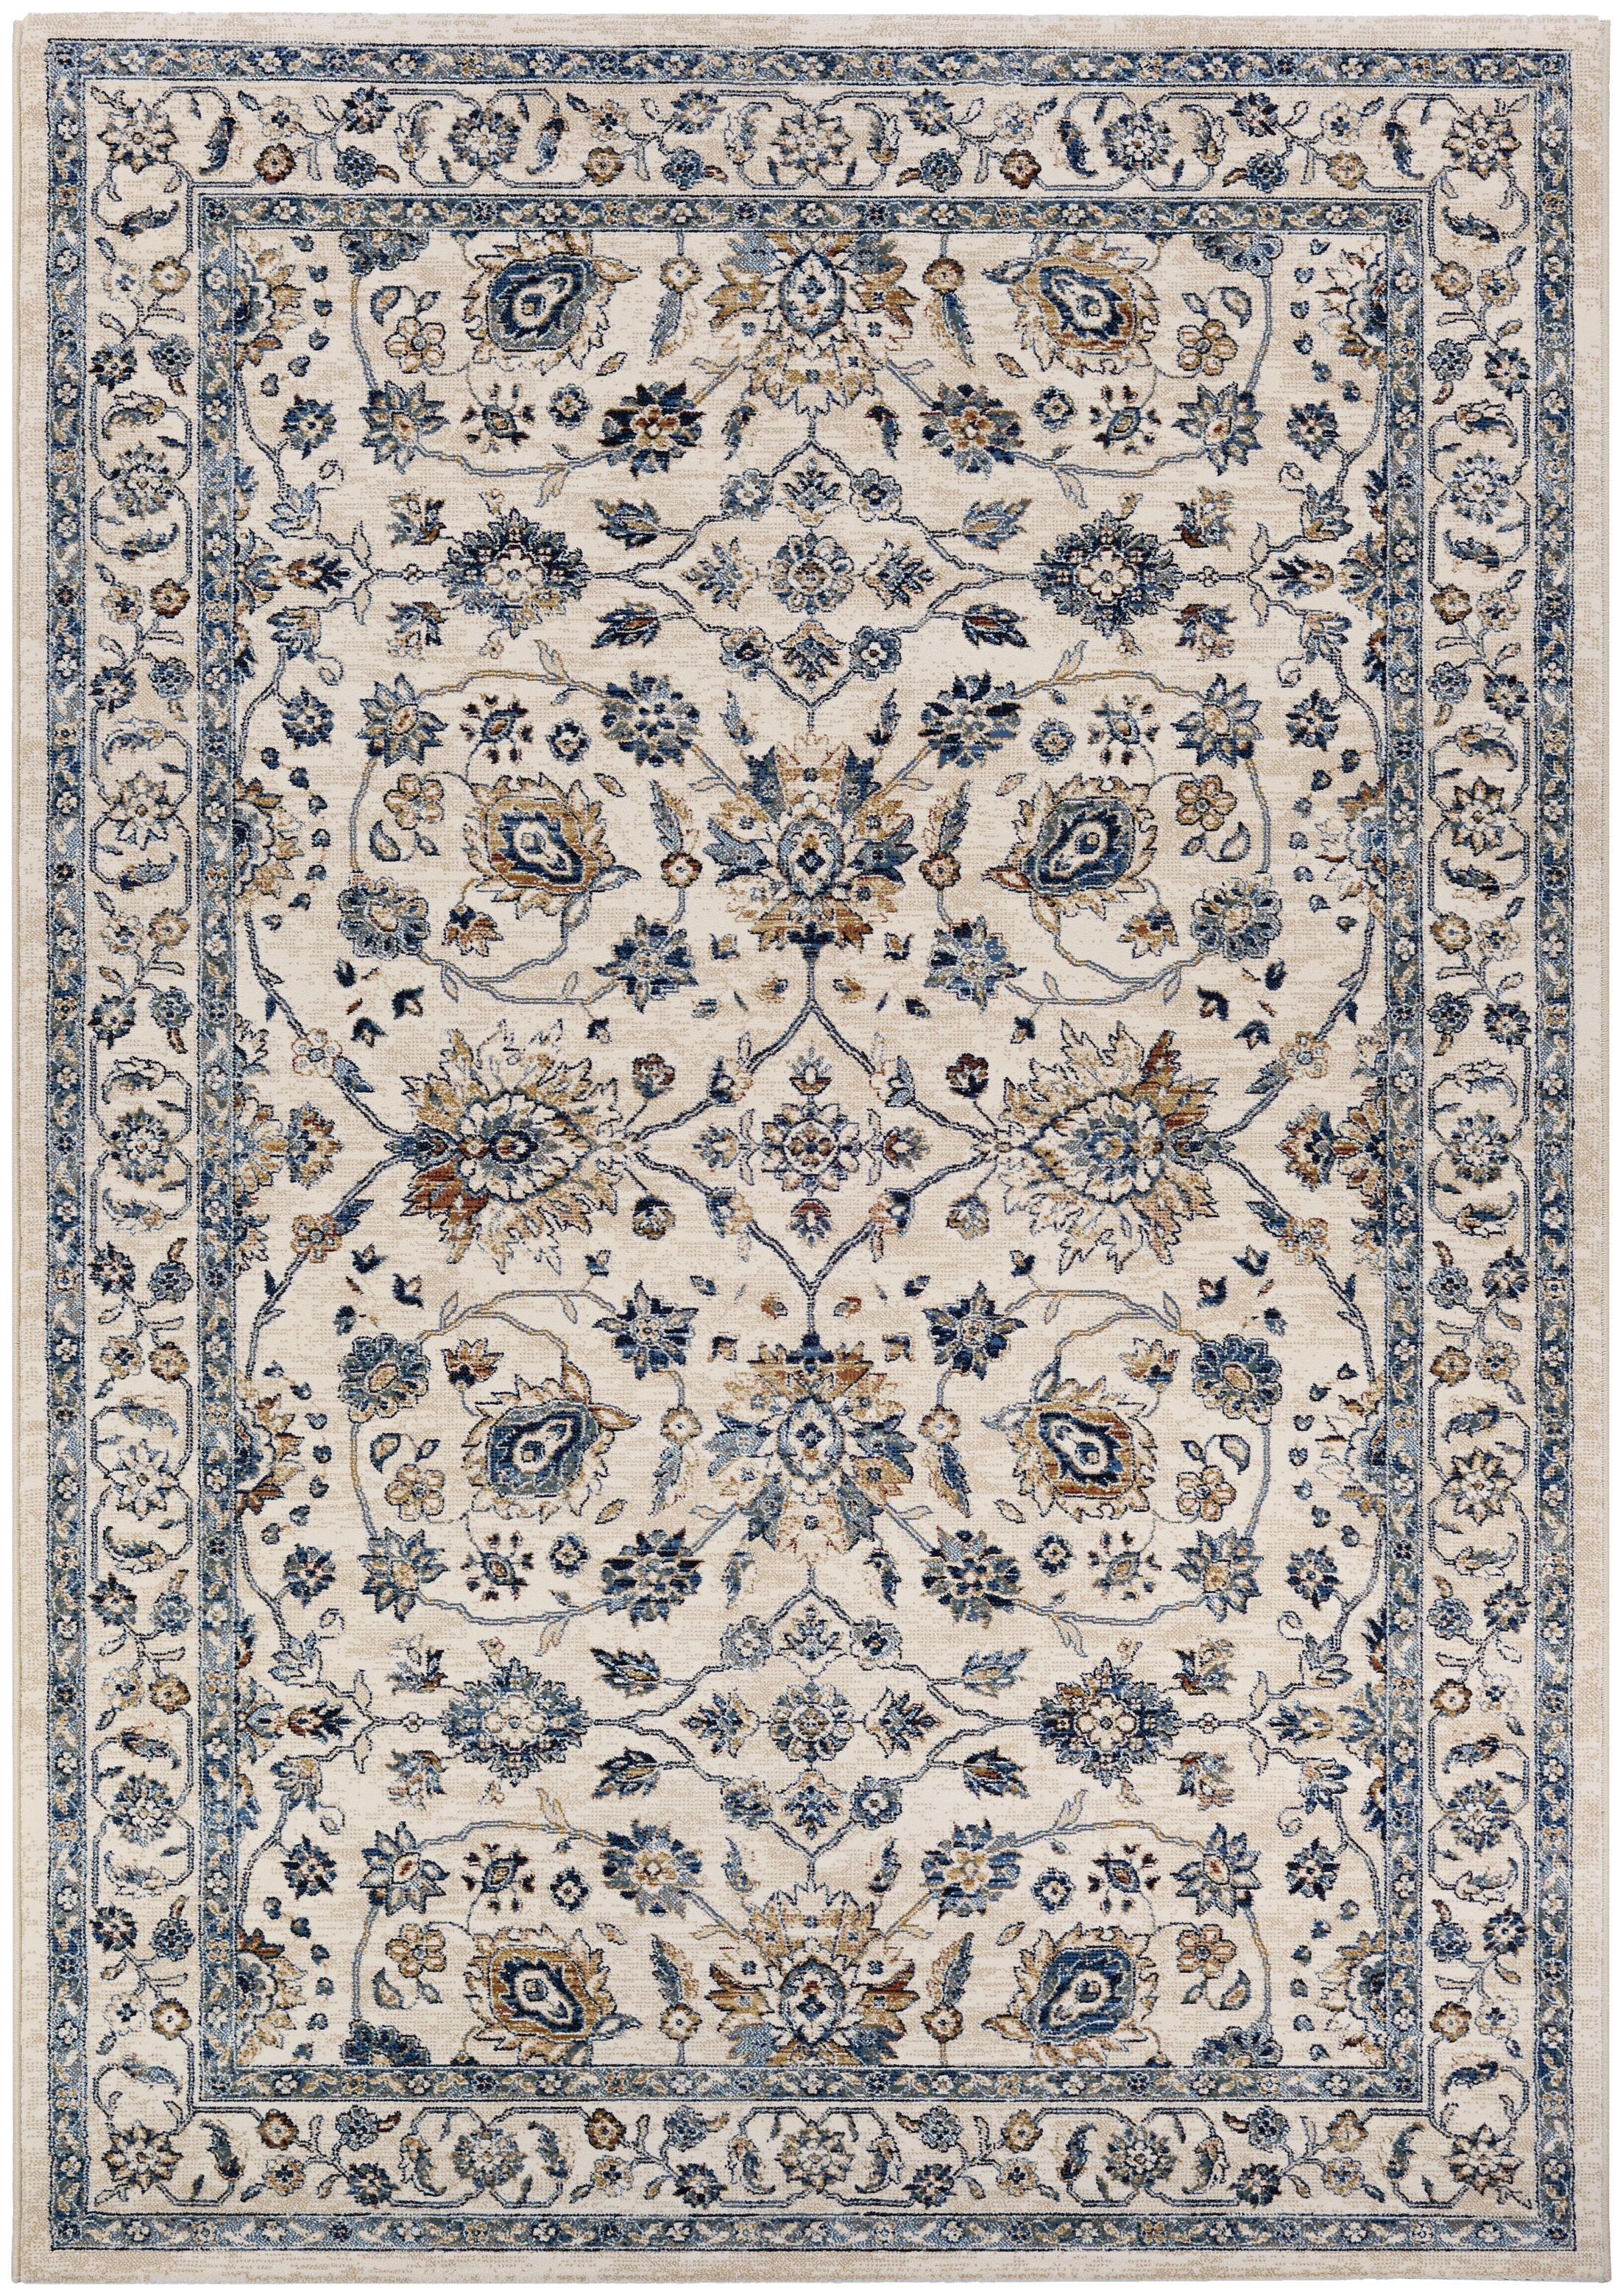 Grimaldo Antique Cream/Slate Area Rug Rug Size: Rectangle 5'3